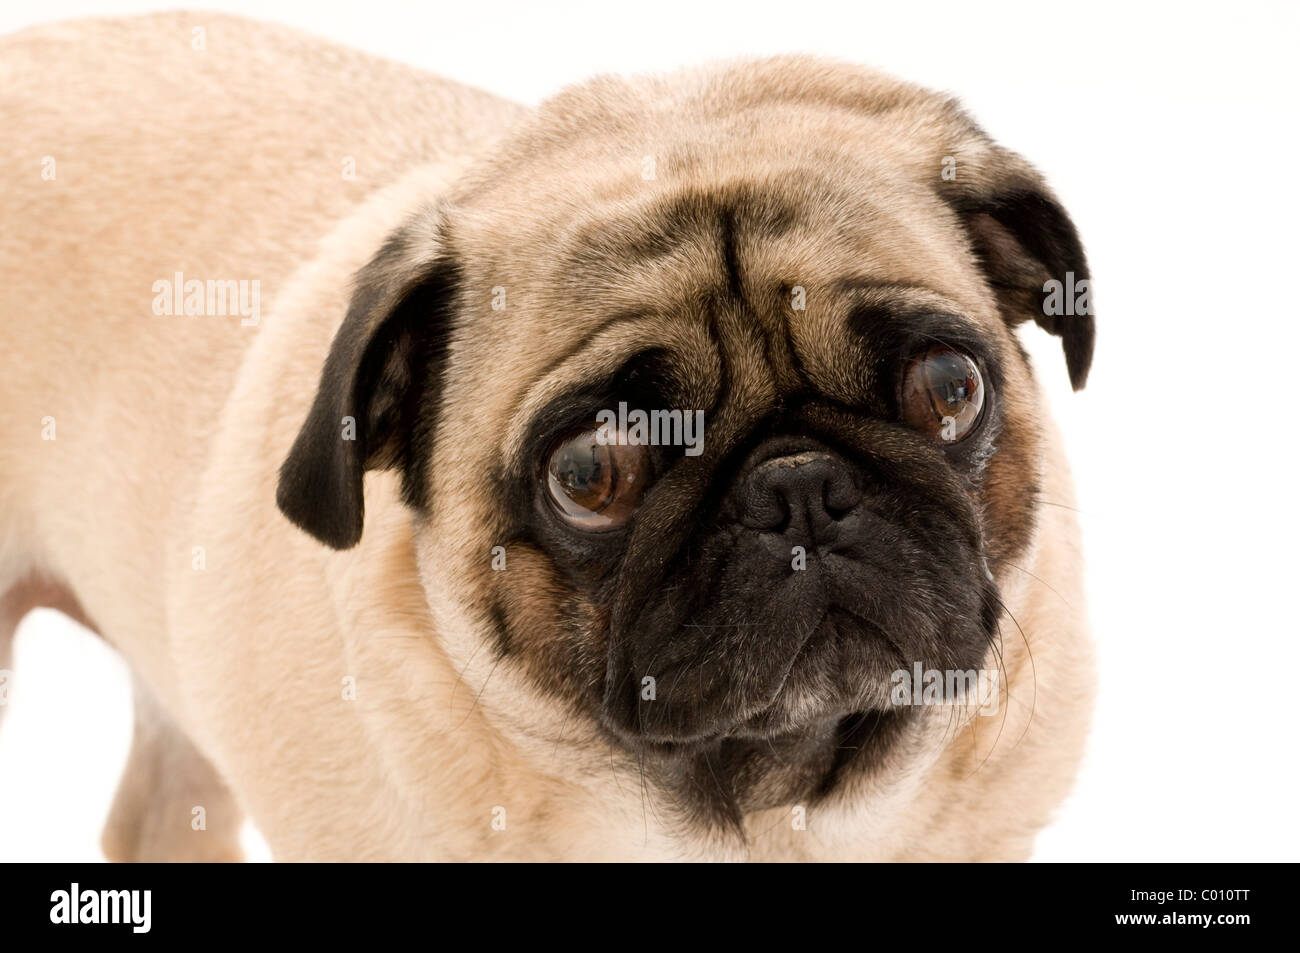 Pug with Expressive Face. - Stock Image